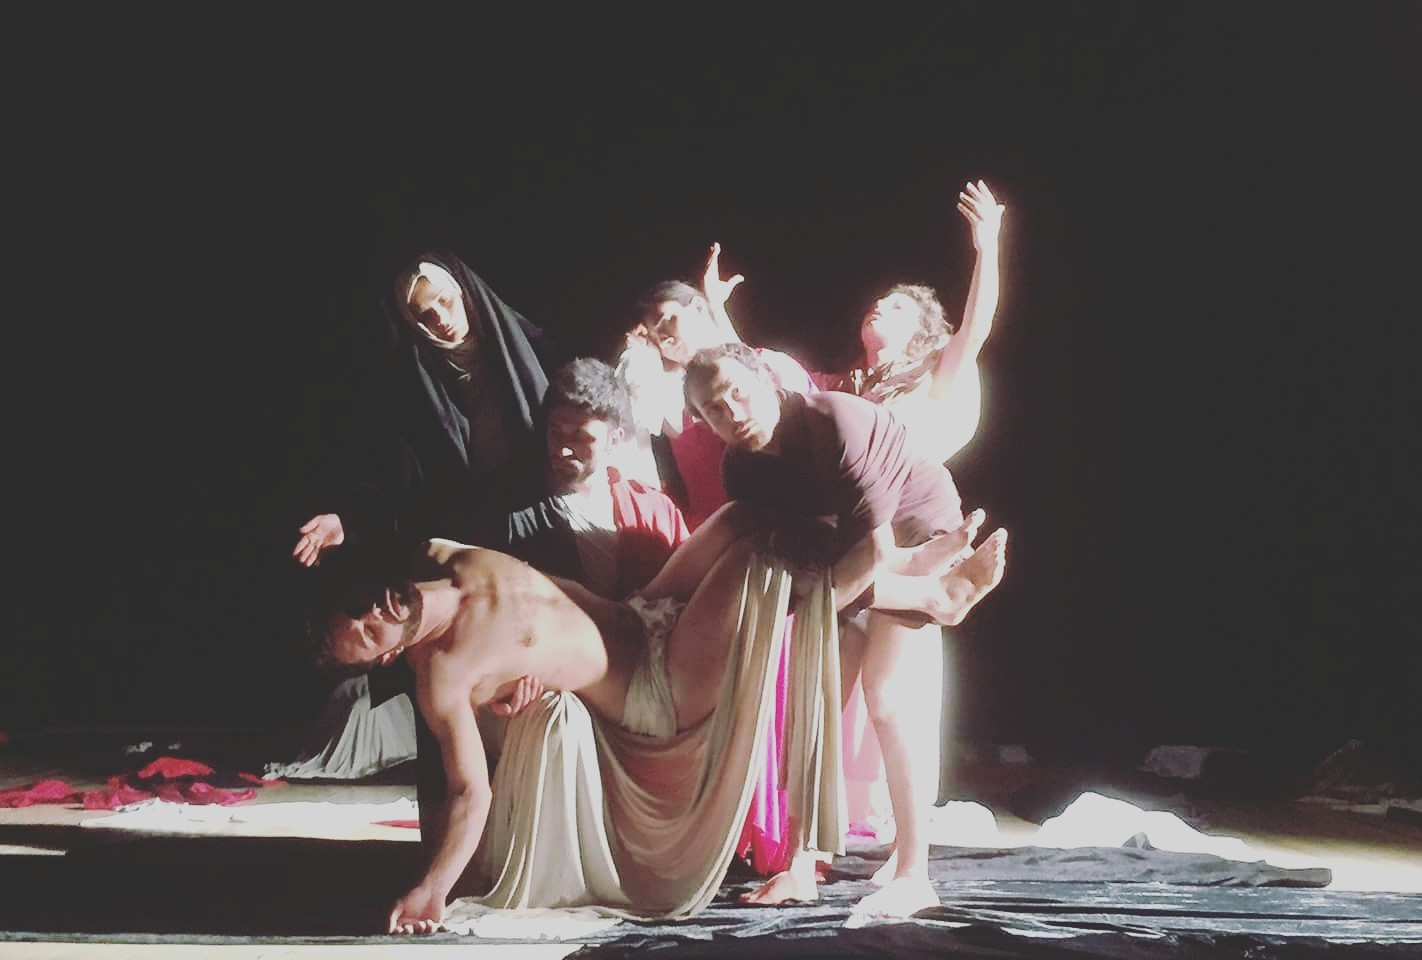 Caravaggio rivive al teatro De Berardinis in 23 tableaux vivants